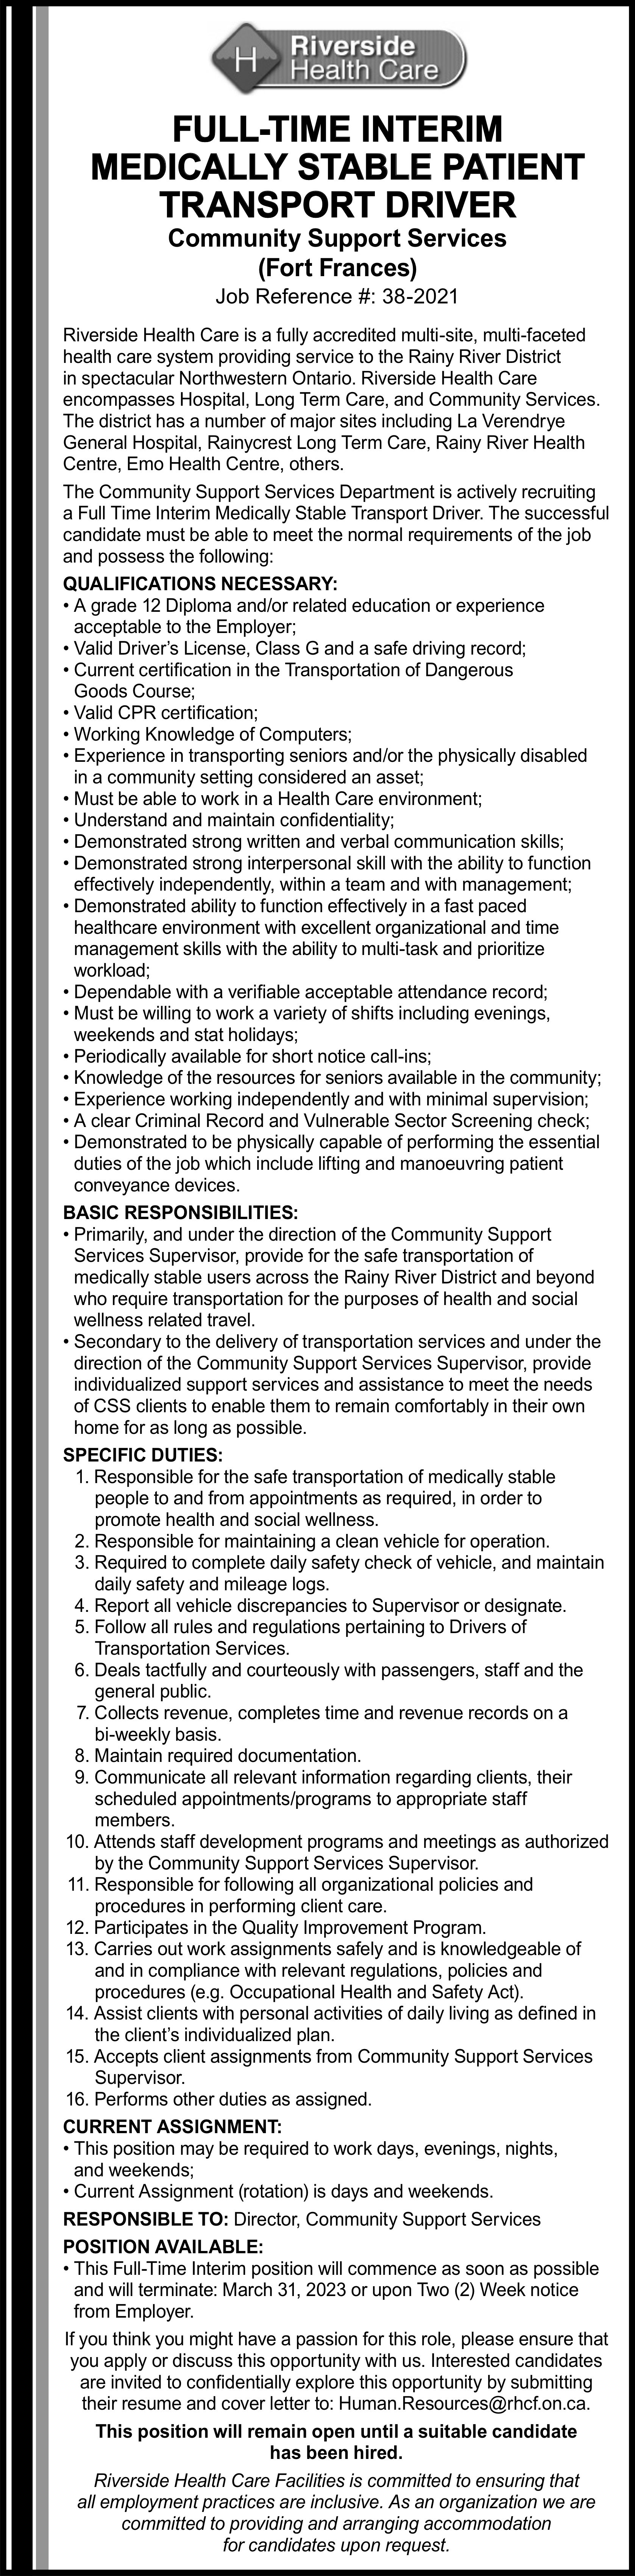 Full-Time Interim Medically Stable Patient Transport Driver